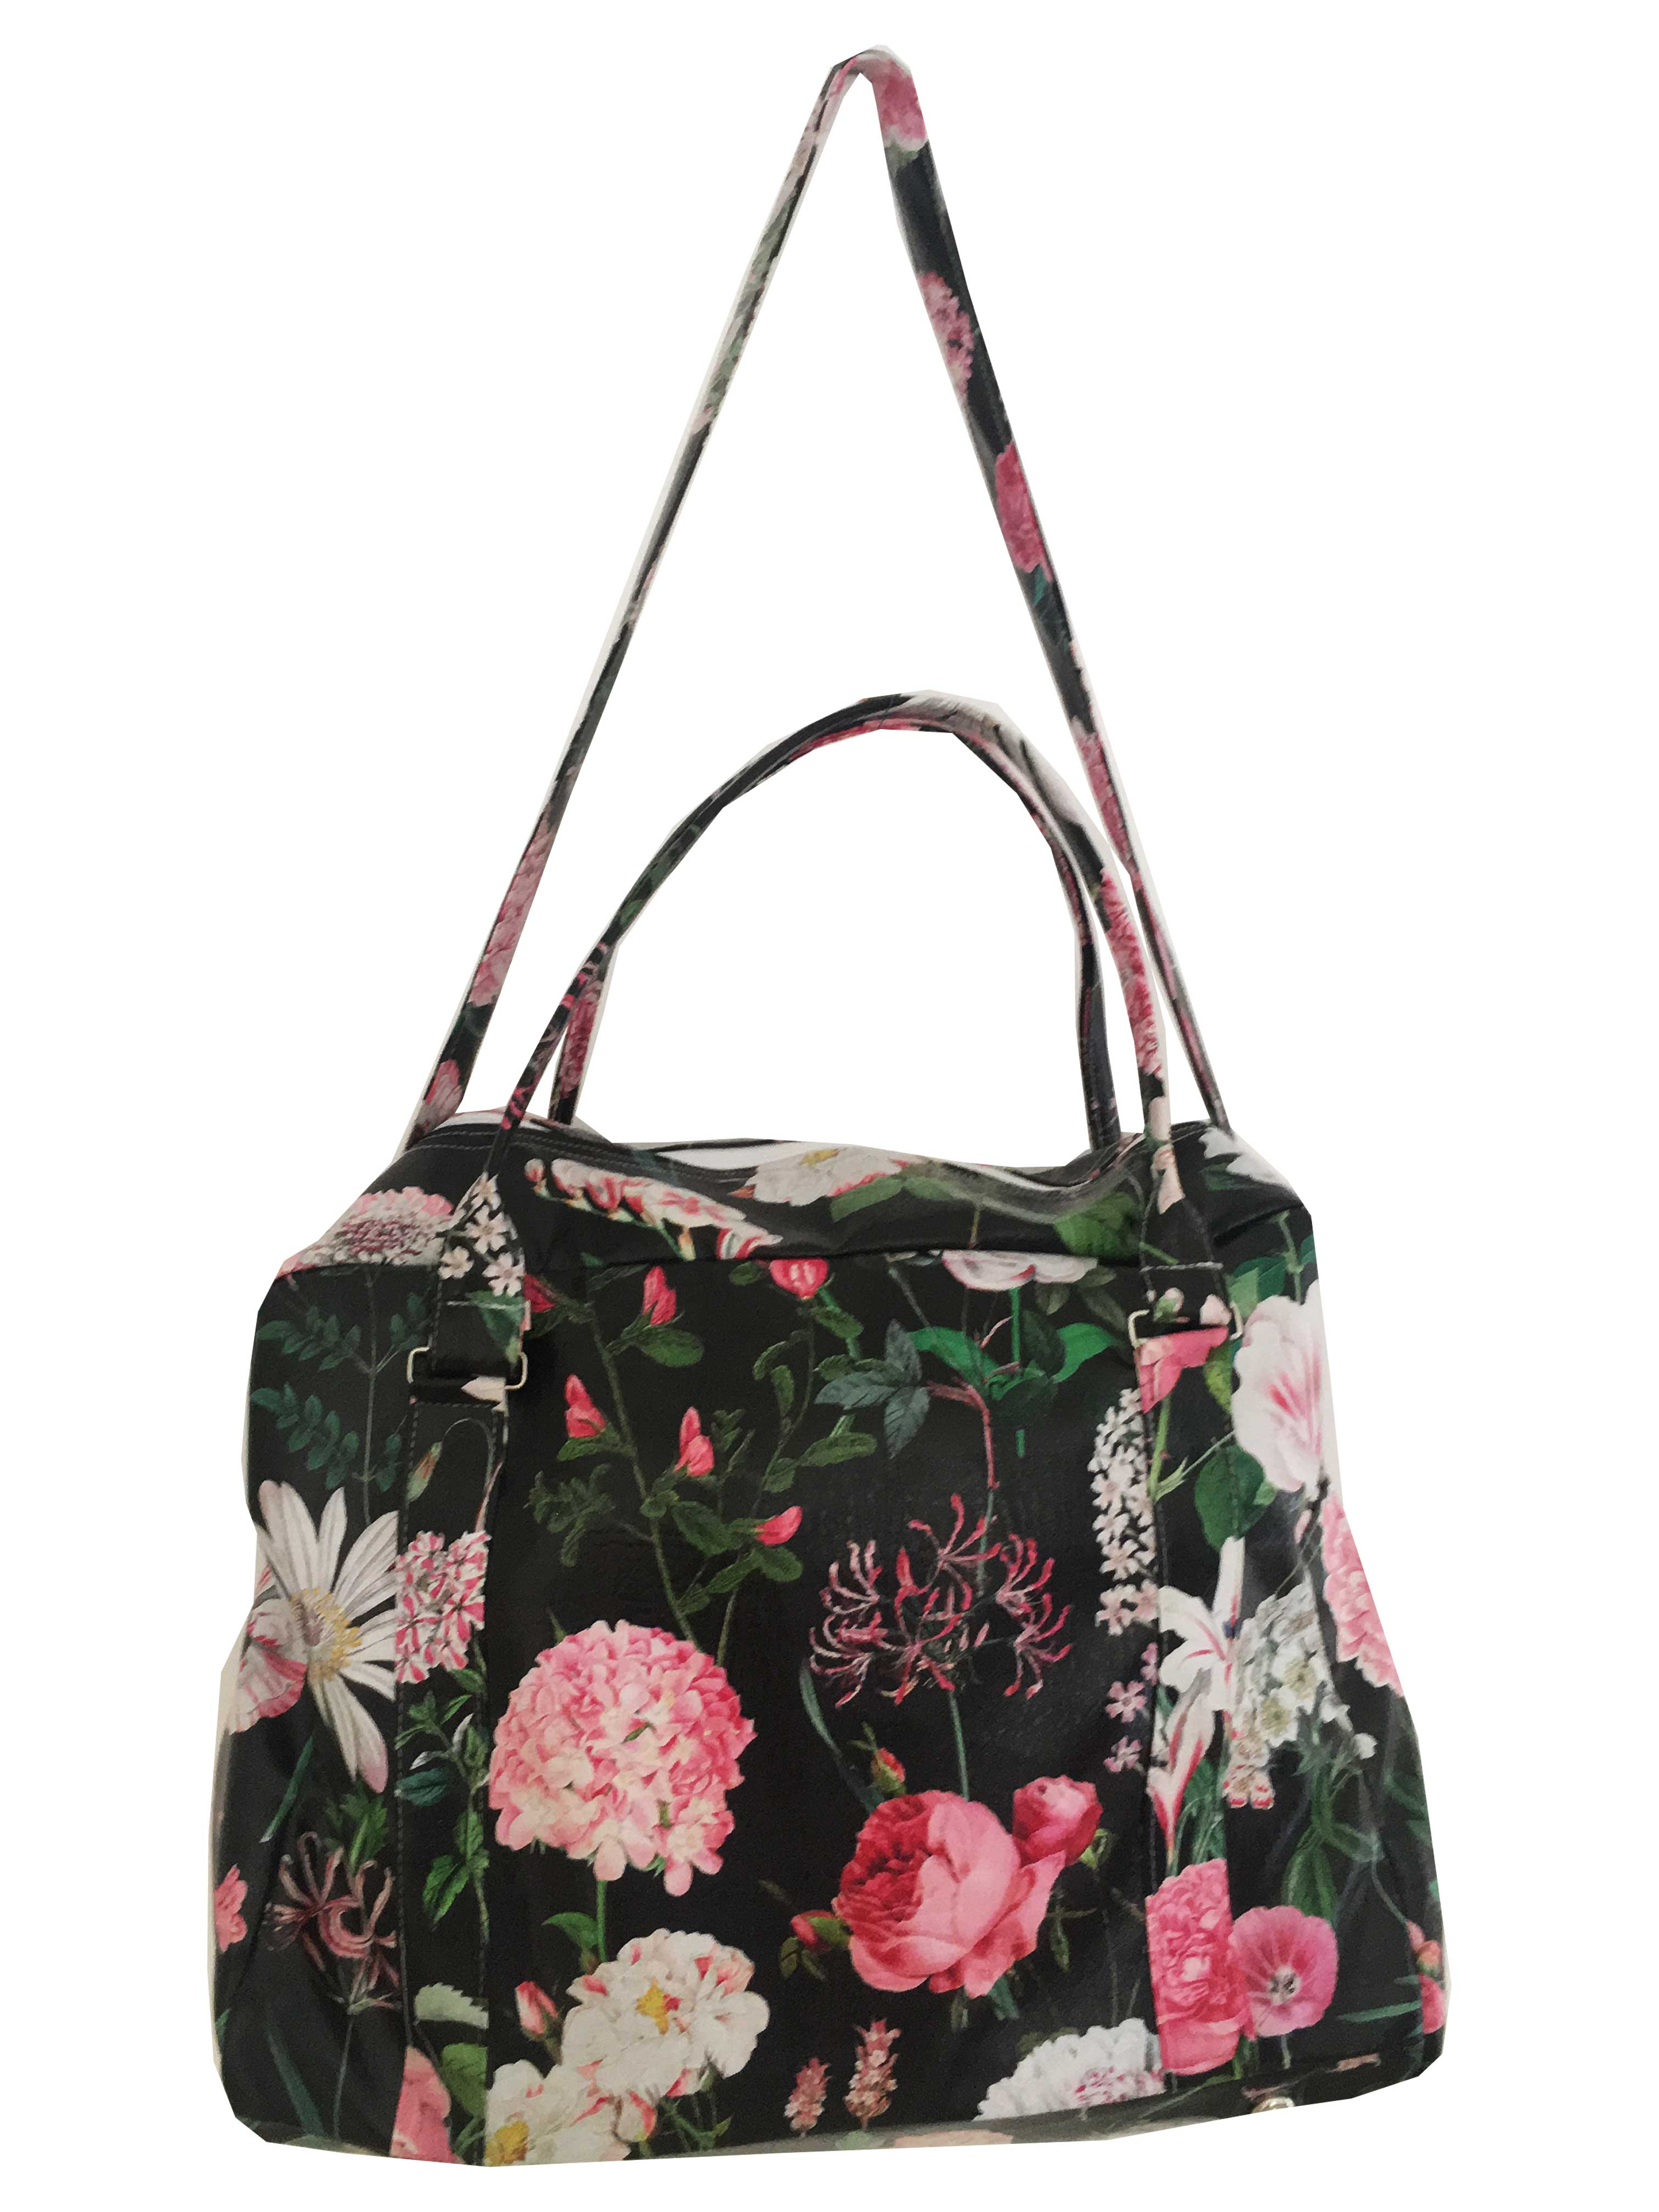 Beautiful and practical Peony Ebony design printed onto Vegan Leather